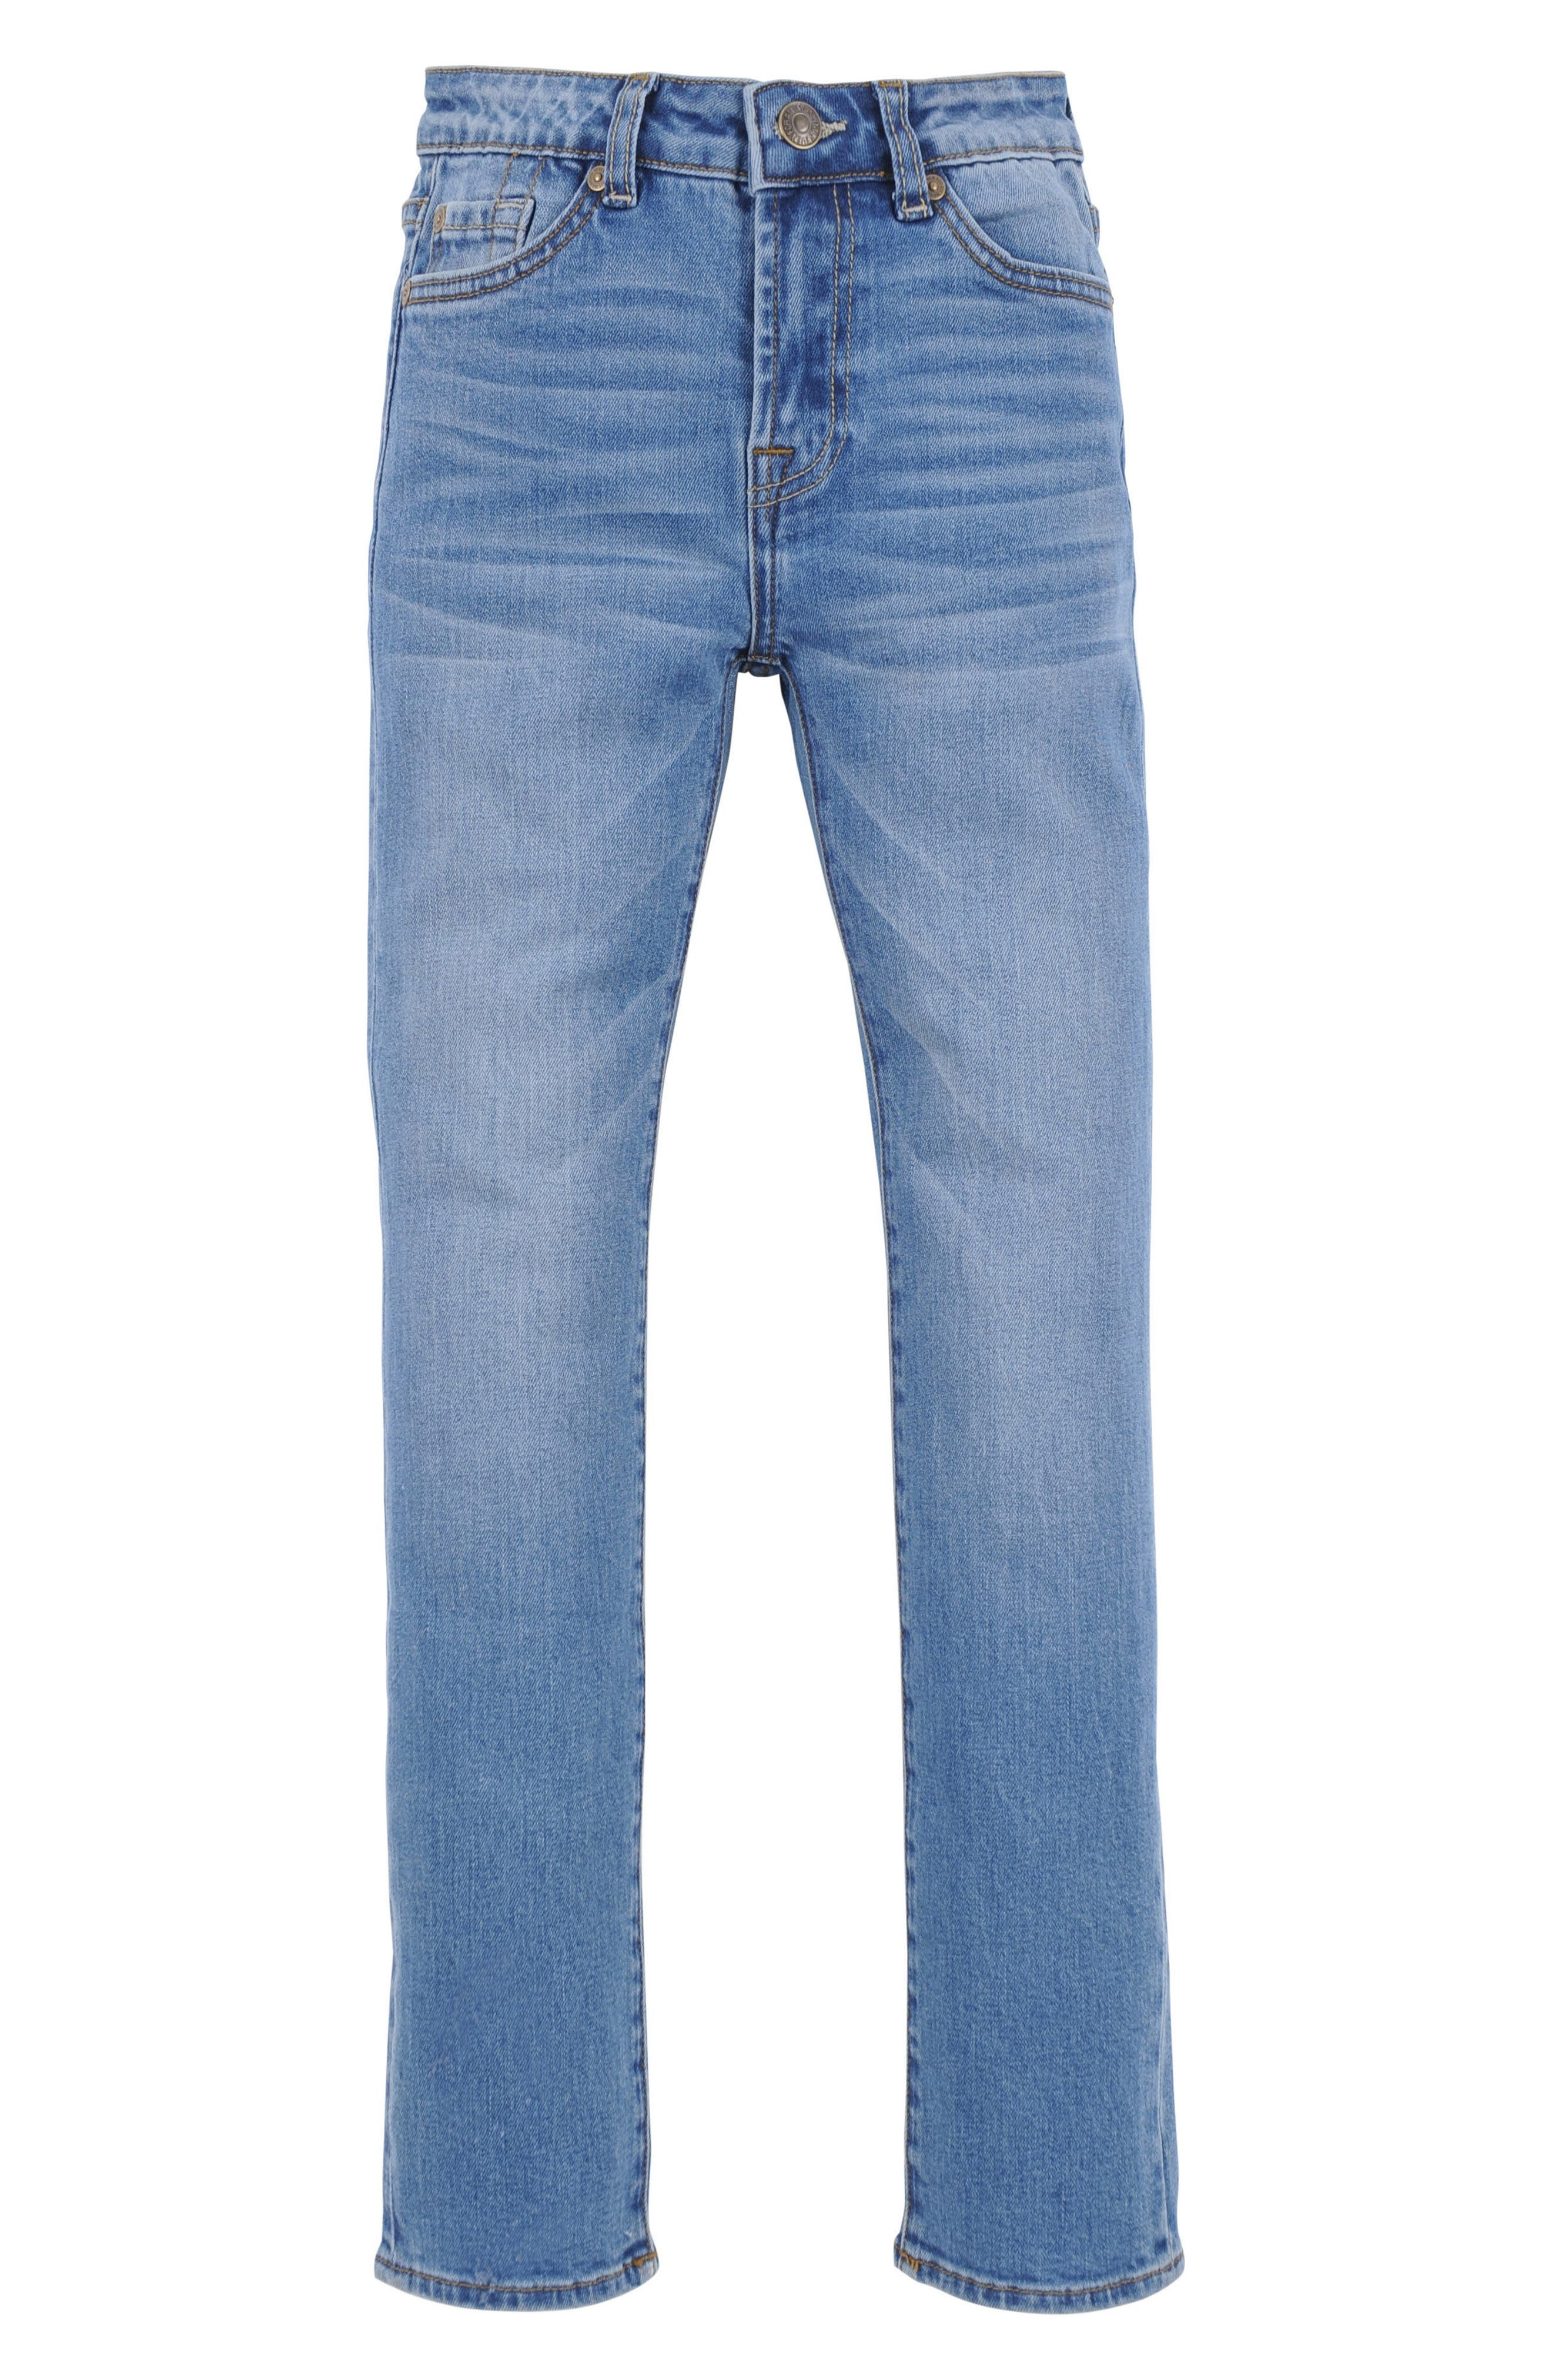 Slimmy Foolproof Jeans,                             Main thumbnail 1, color,                             Solace